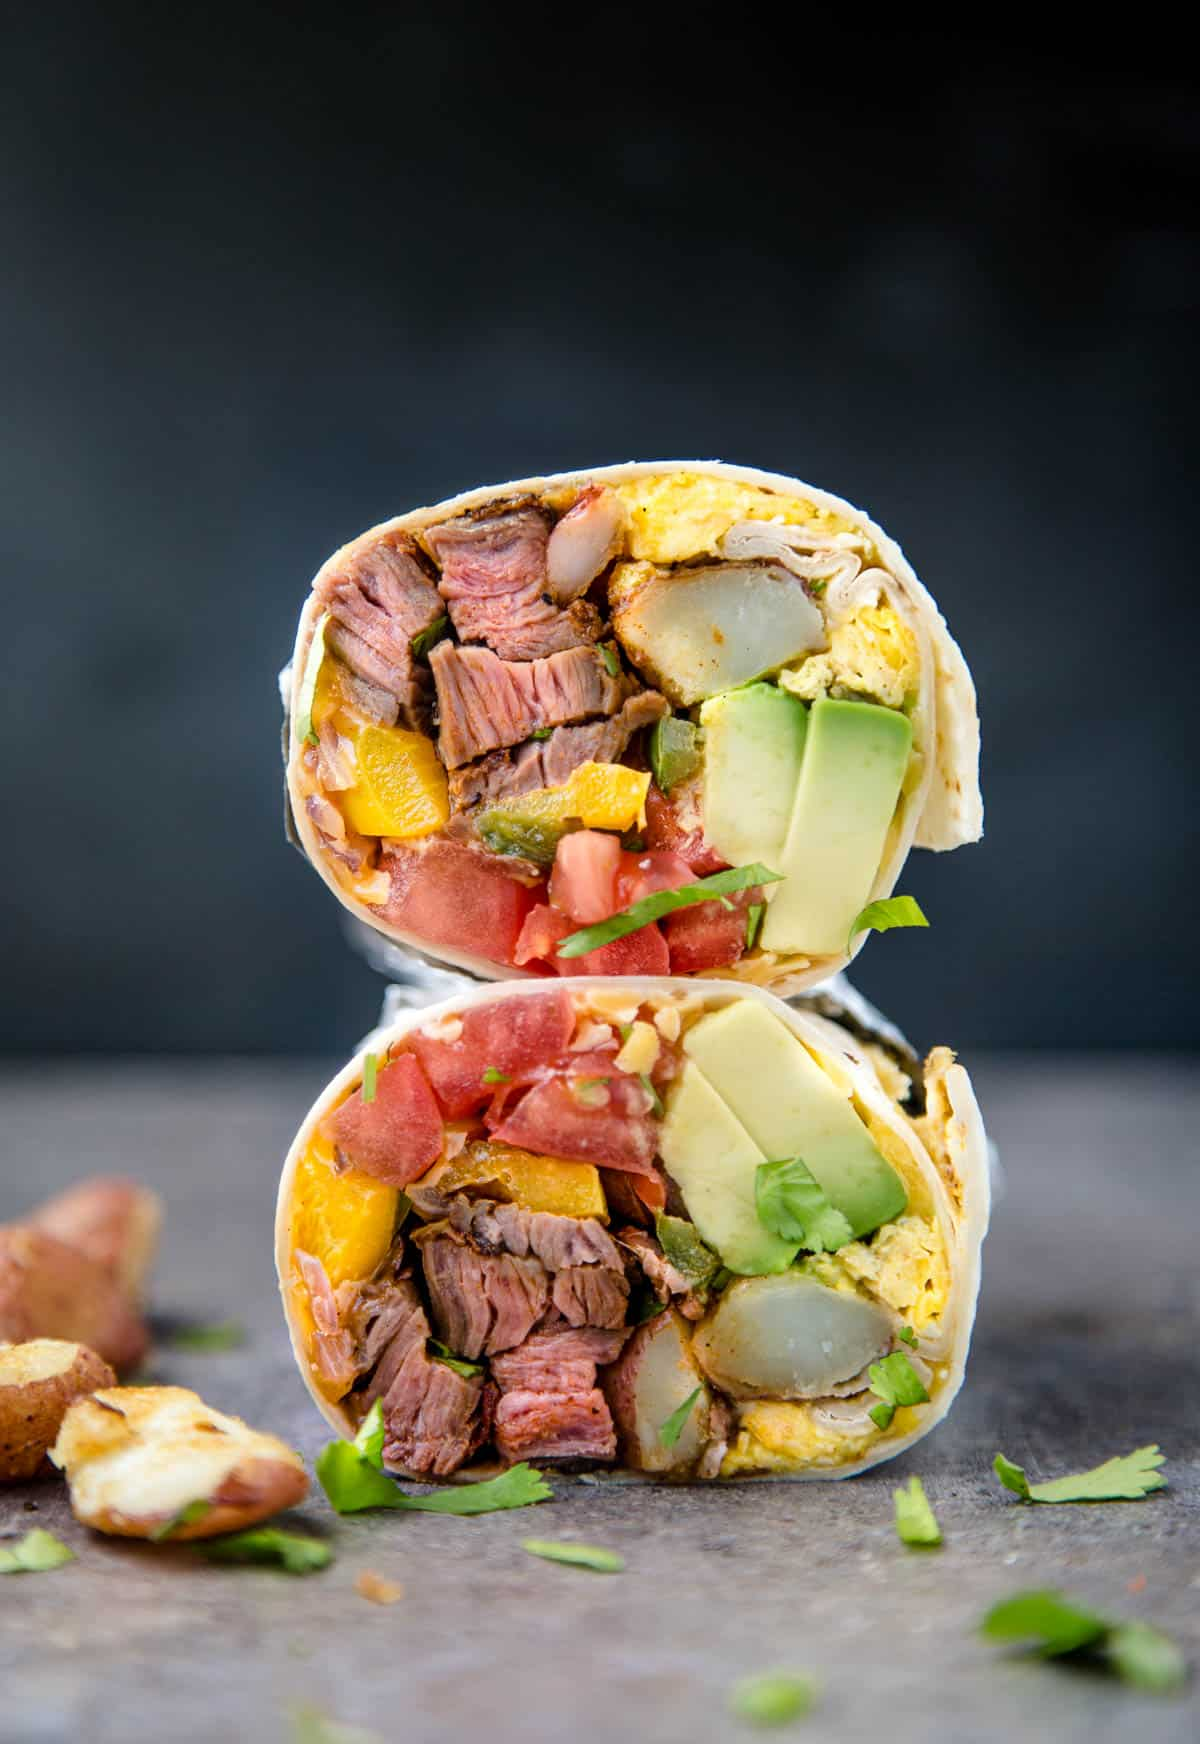 A burrito filled with steak, vegetables, and eggs, cut in half.